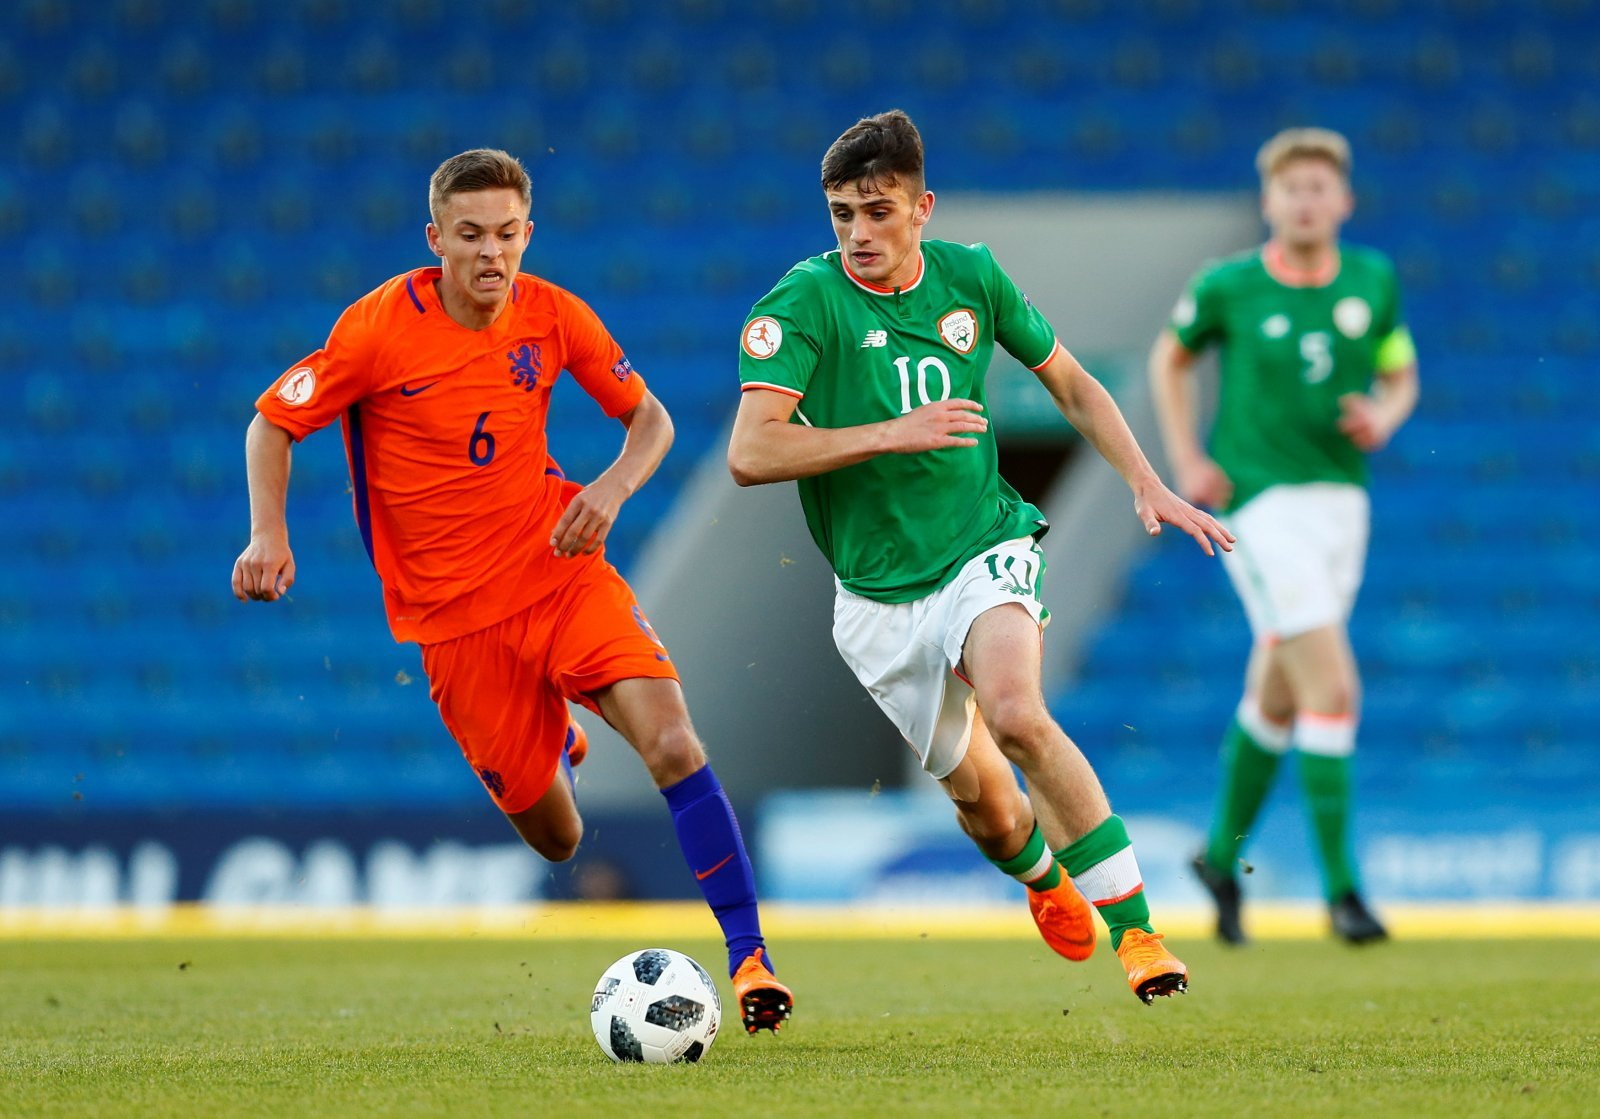 Tottenham Hotspur: Lots of supporters were pleased to see Troy Parrott handed Republic of Ireland senior team call-up